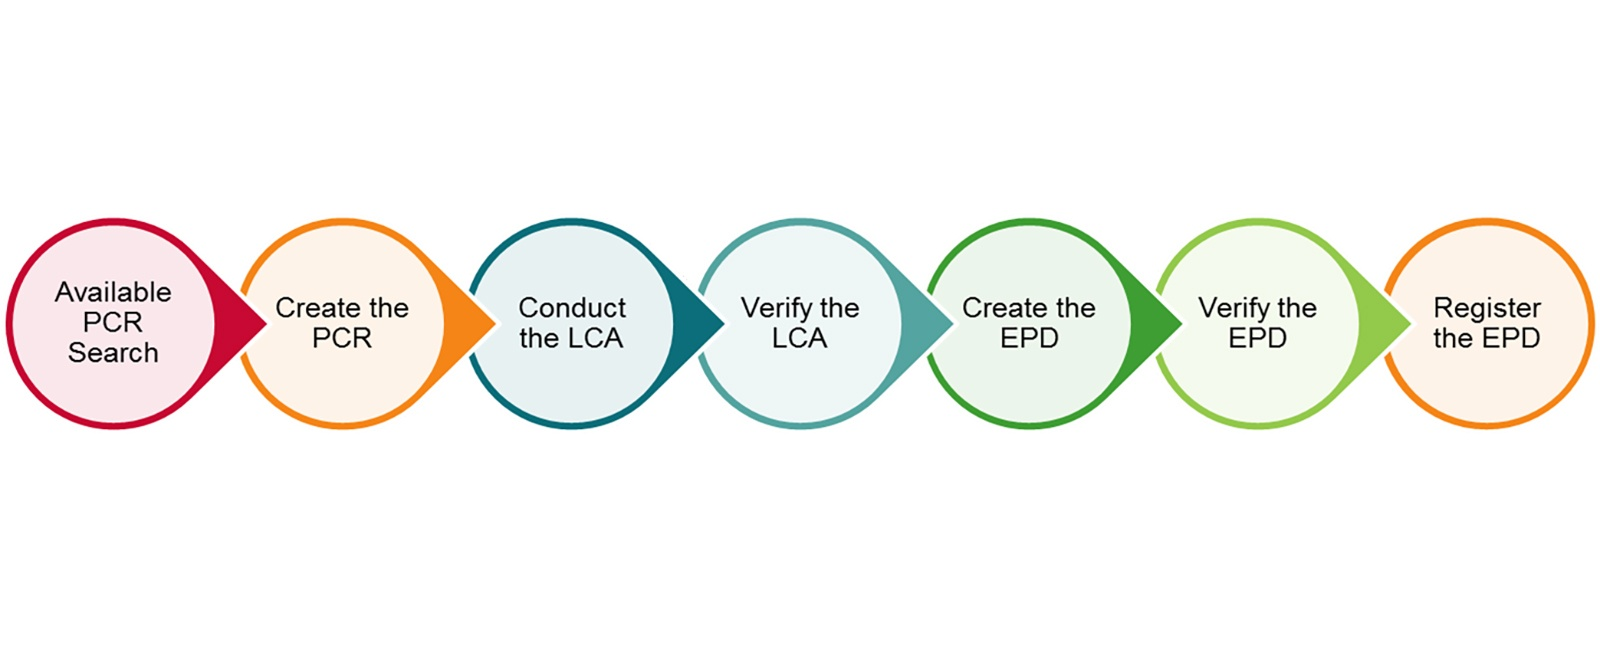 creating an epd: from product category rules to a leed v4 point